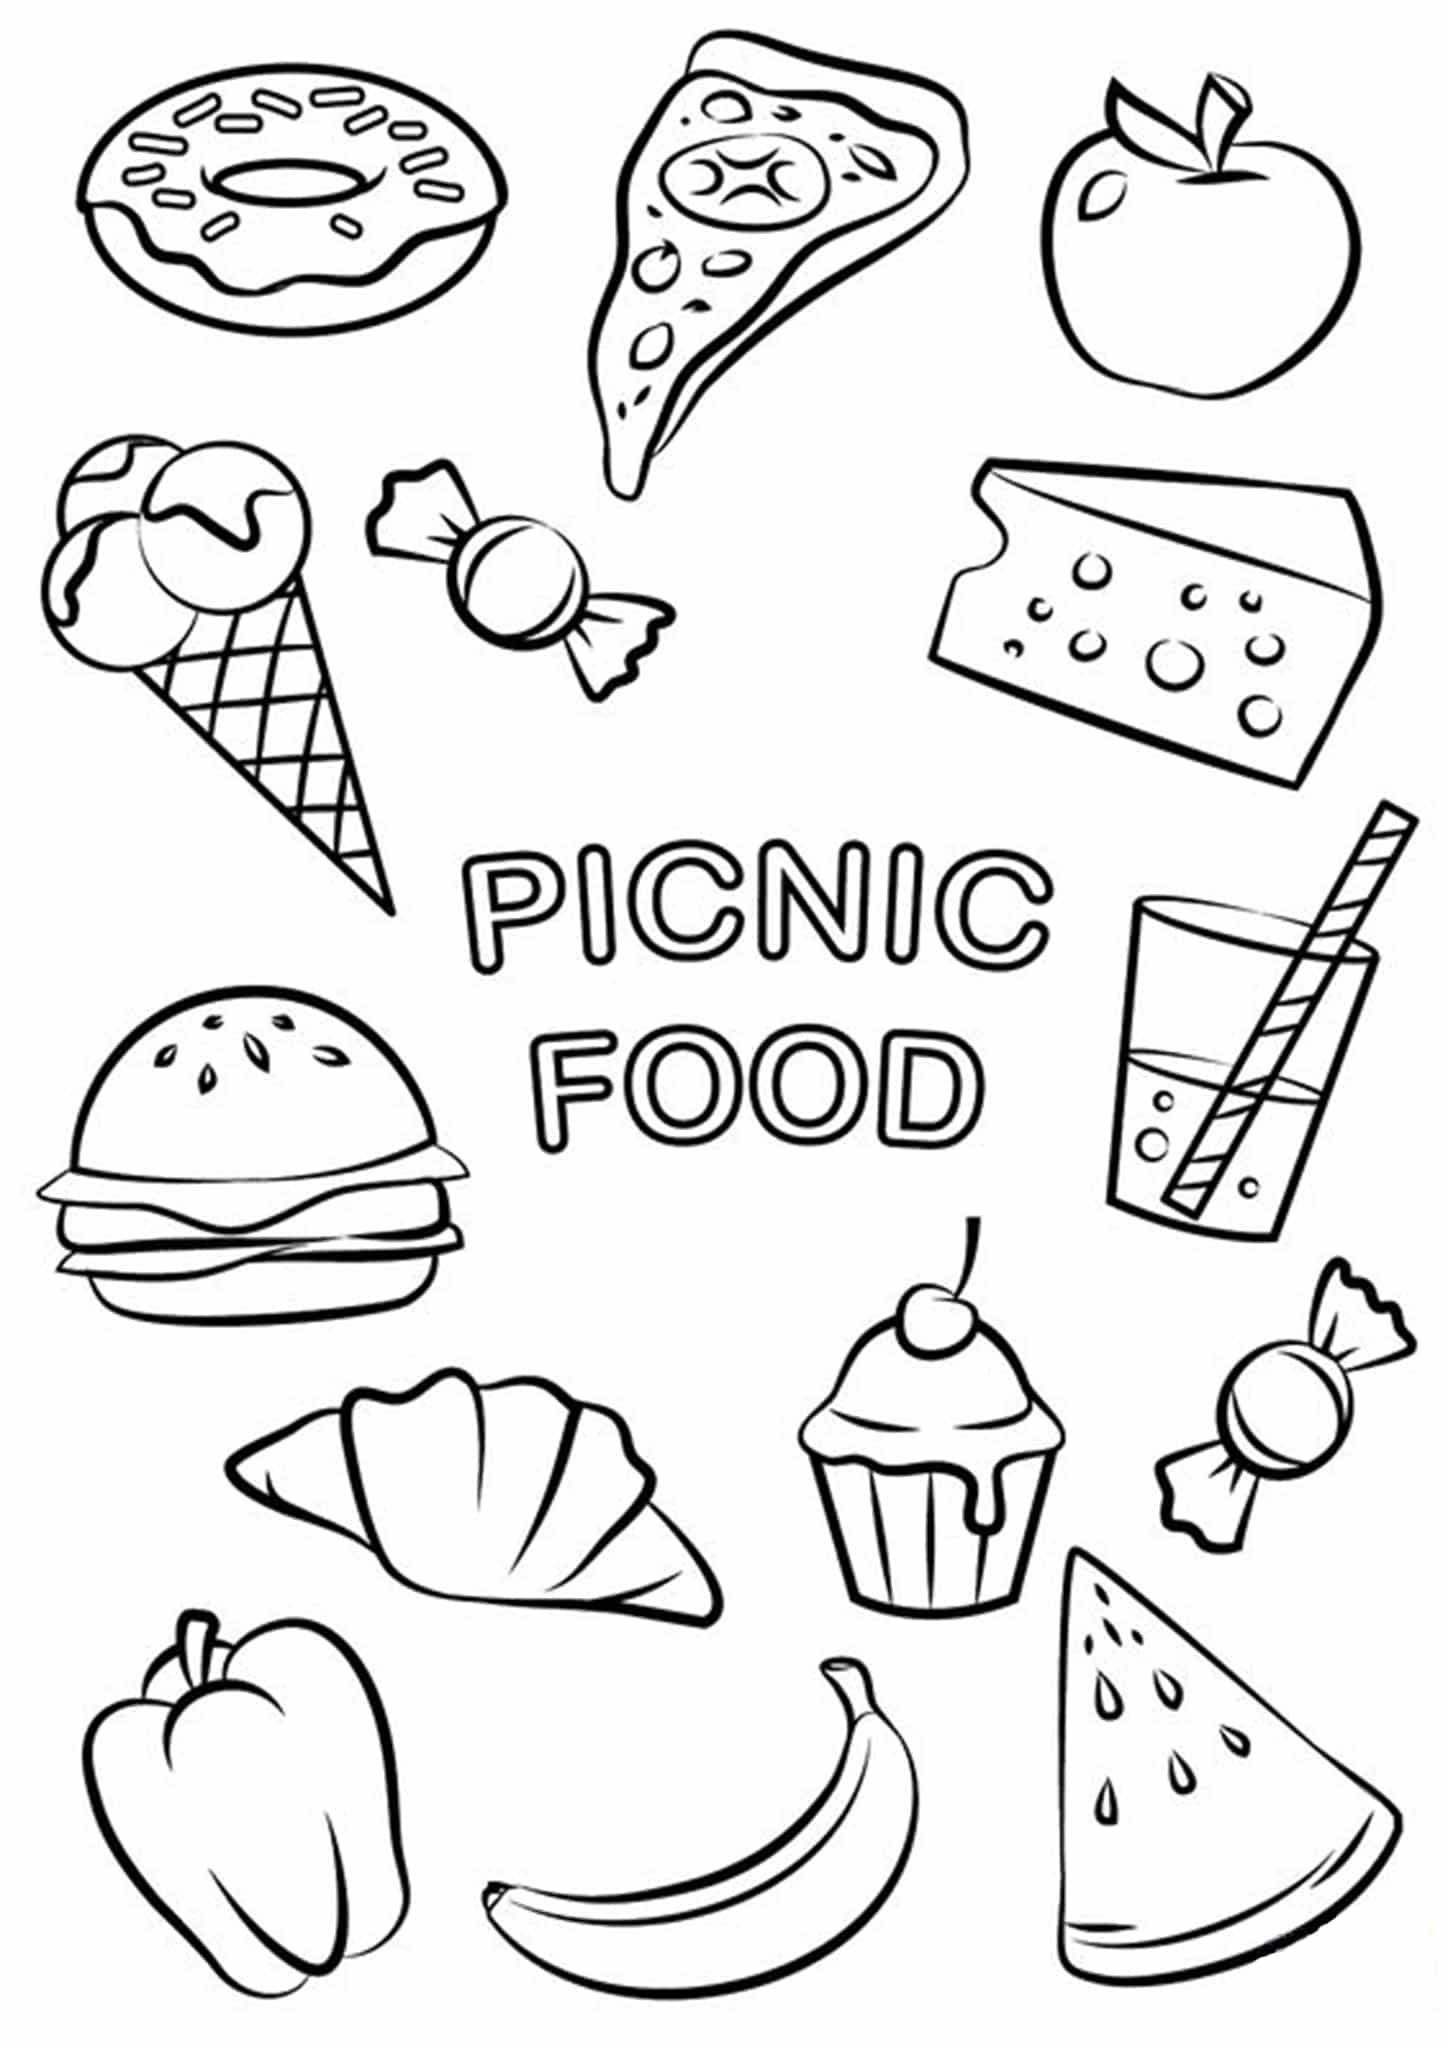 food coloring sheets cute food coloring pages coloring pages to download and food coloring sheets